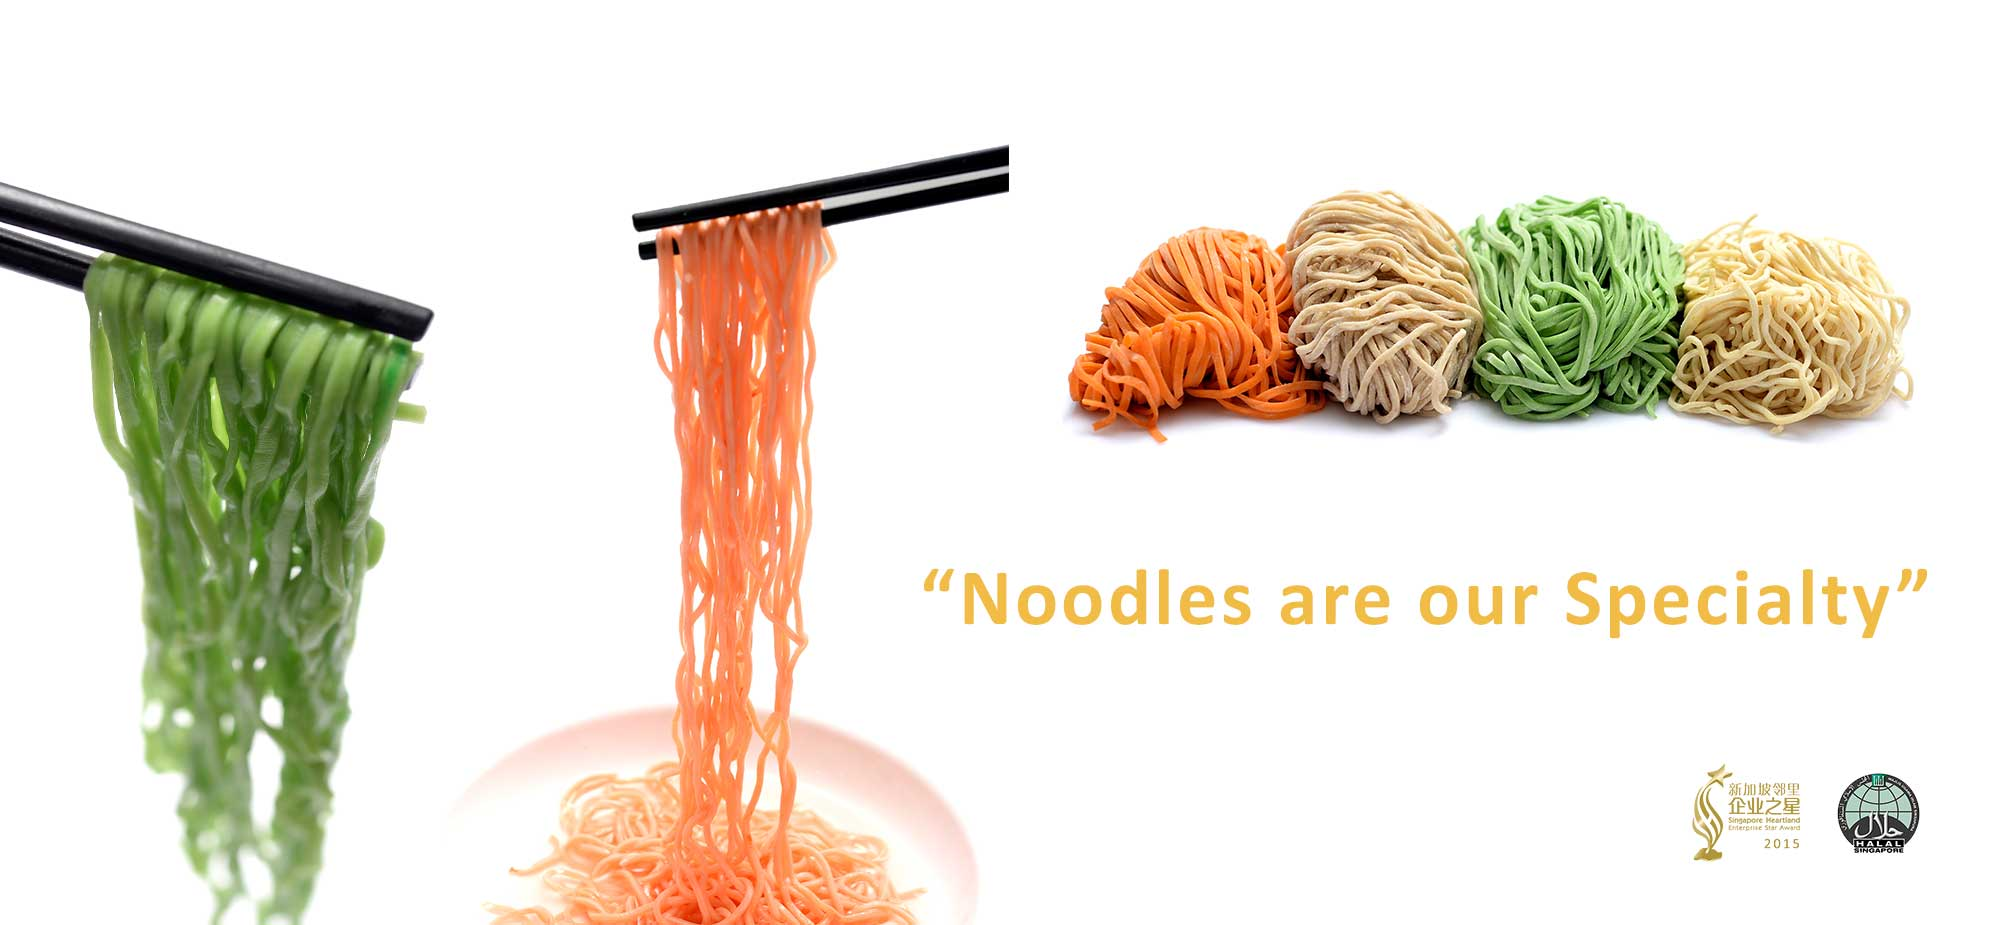 noodles are our specialty